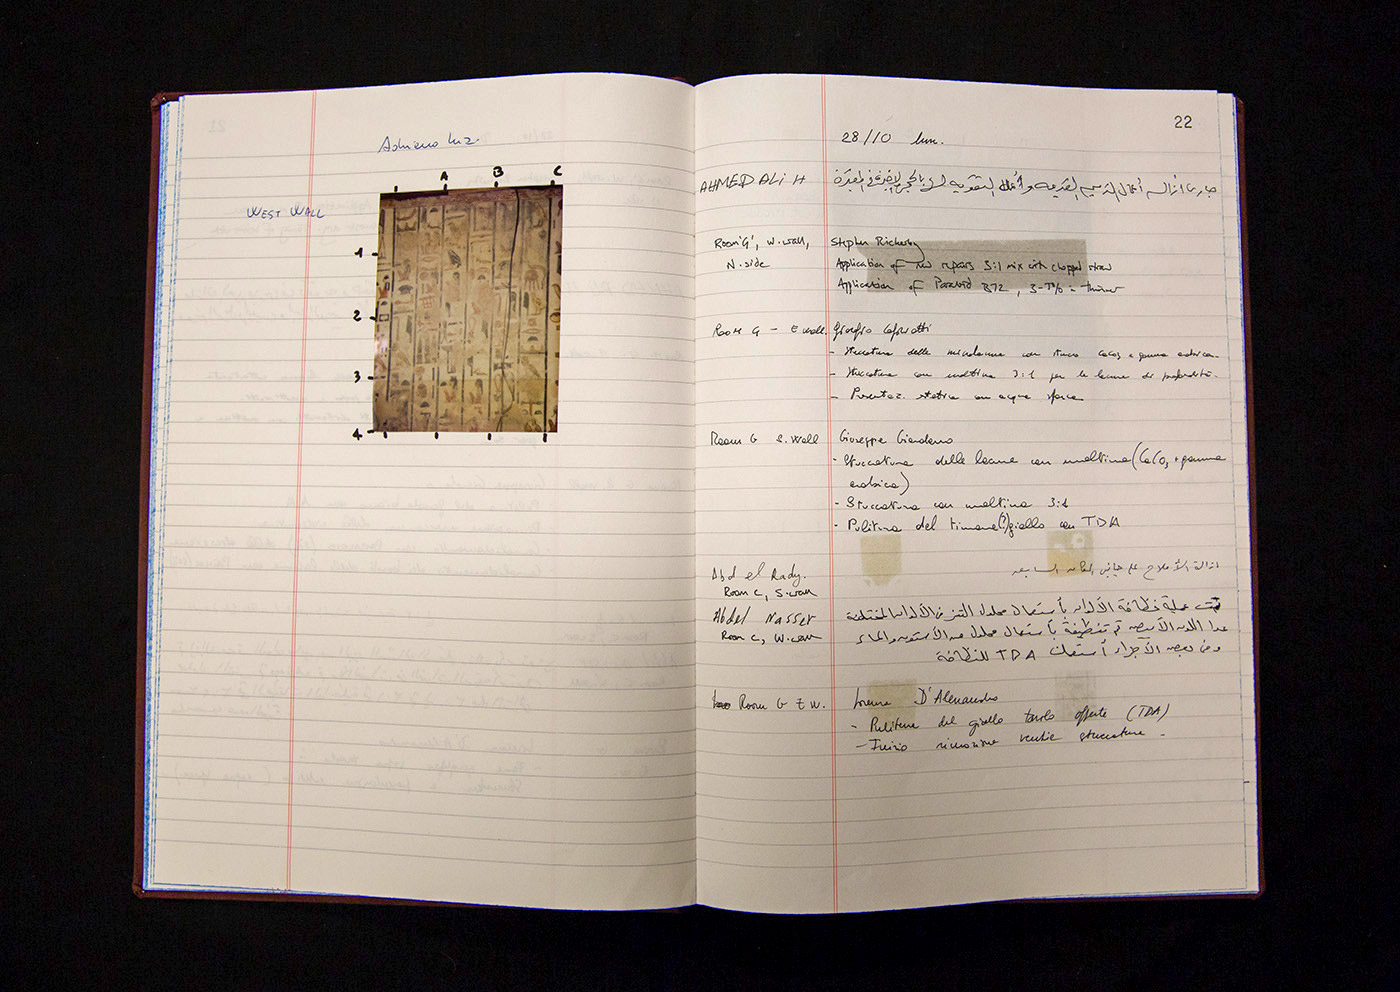 An open notebook shows a photo on the left marked with a grid and handwritten entries on the right.